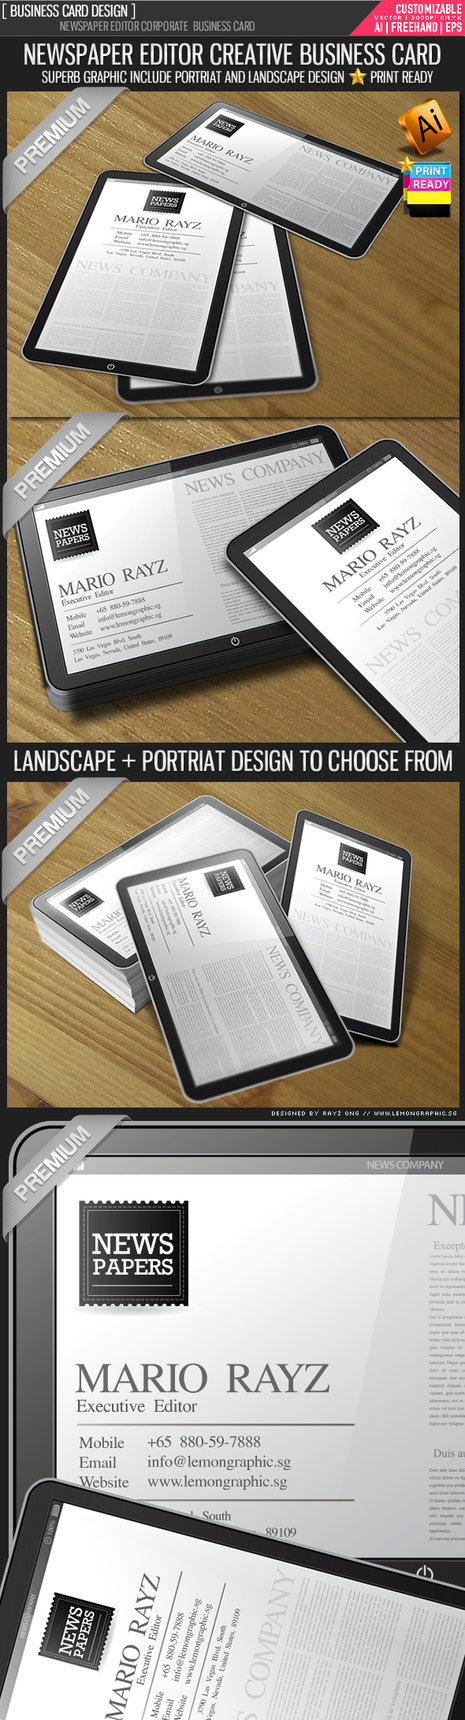 Ipad business card business cards pinterest business cards and ipad business card reheart Images